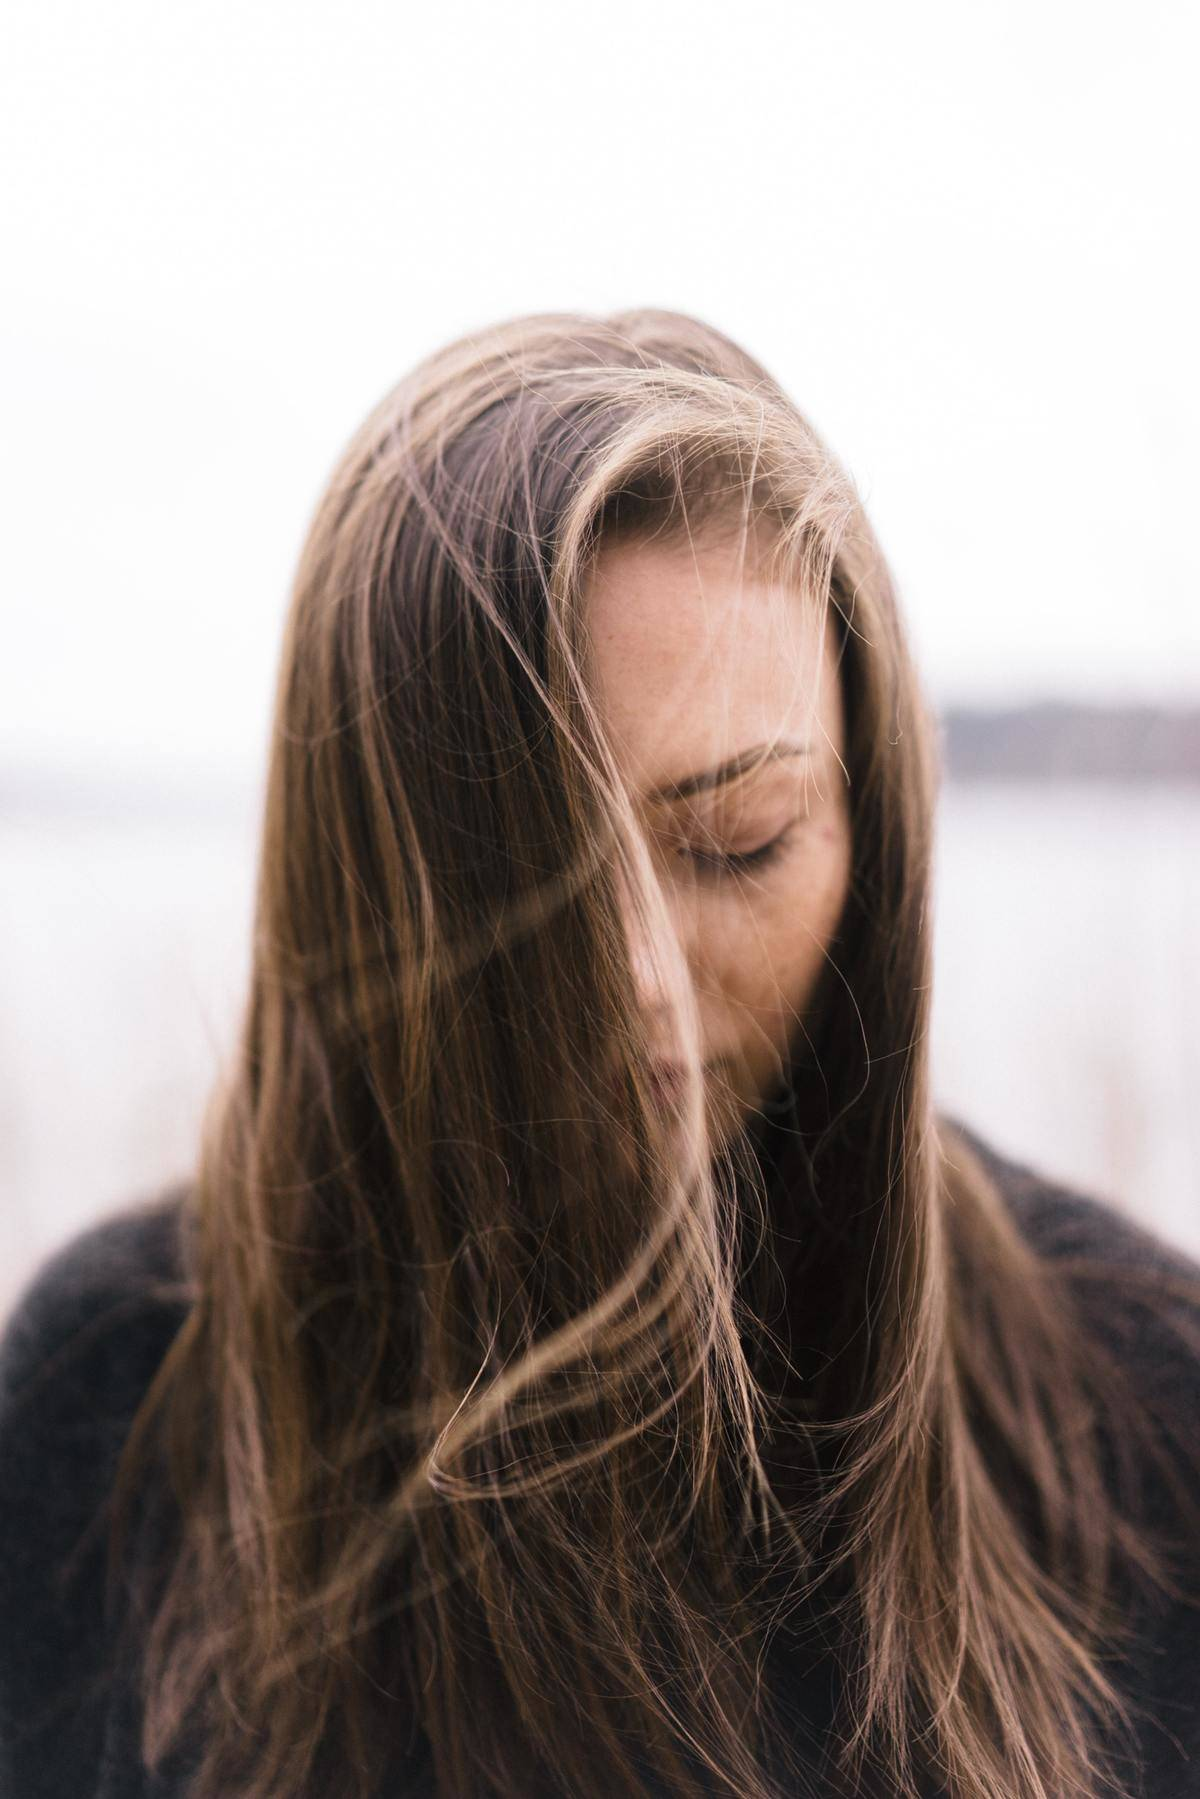 woman looking down with wind in hair